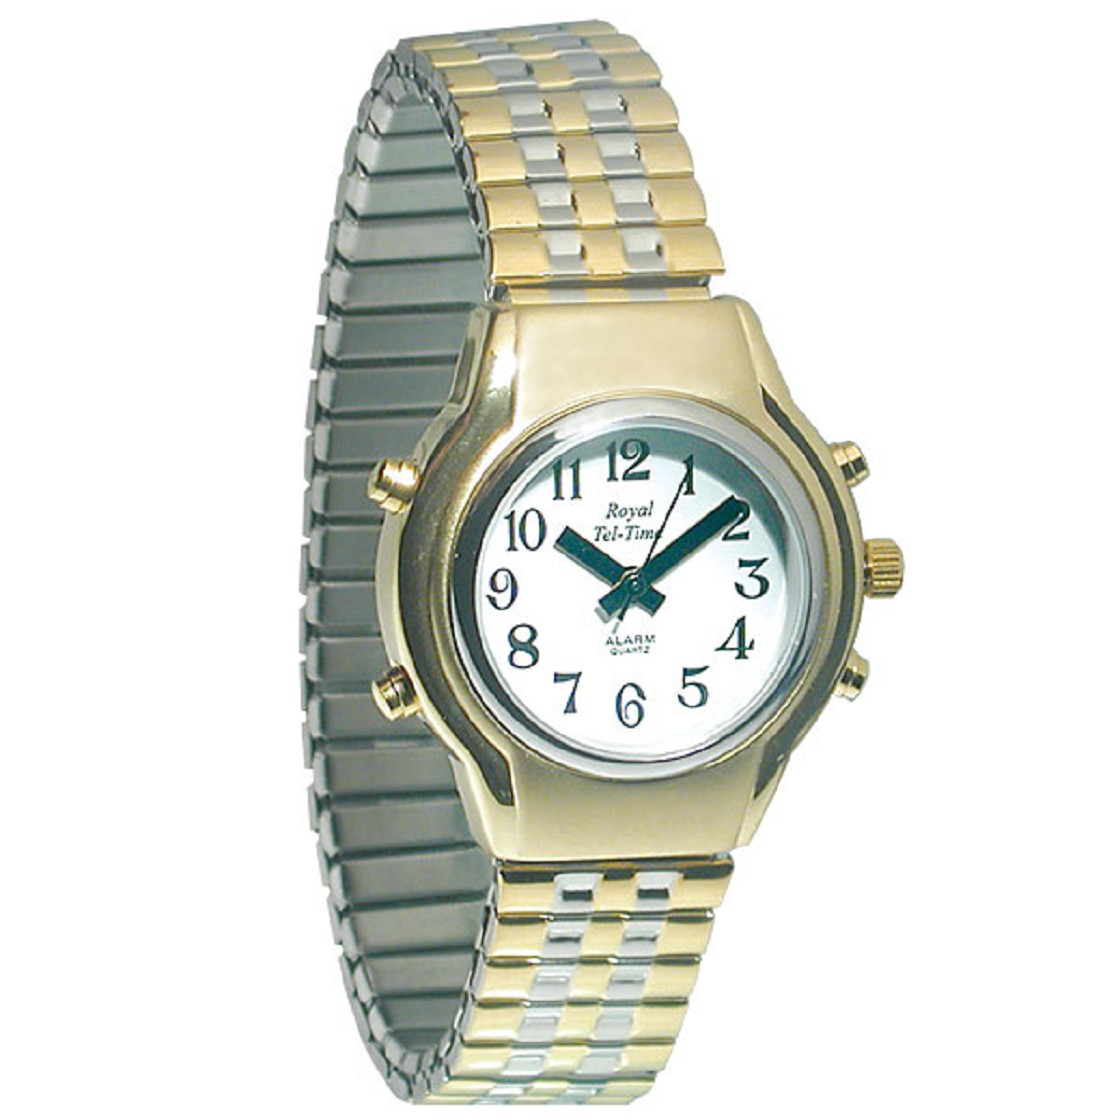 Talking Watches - Low Vision - Magnifying Aids